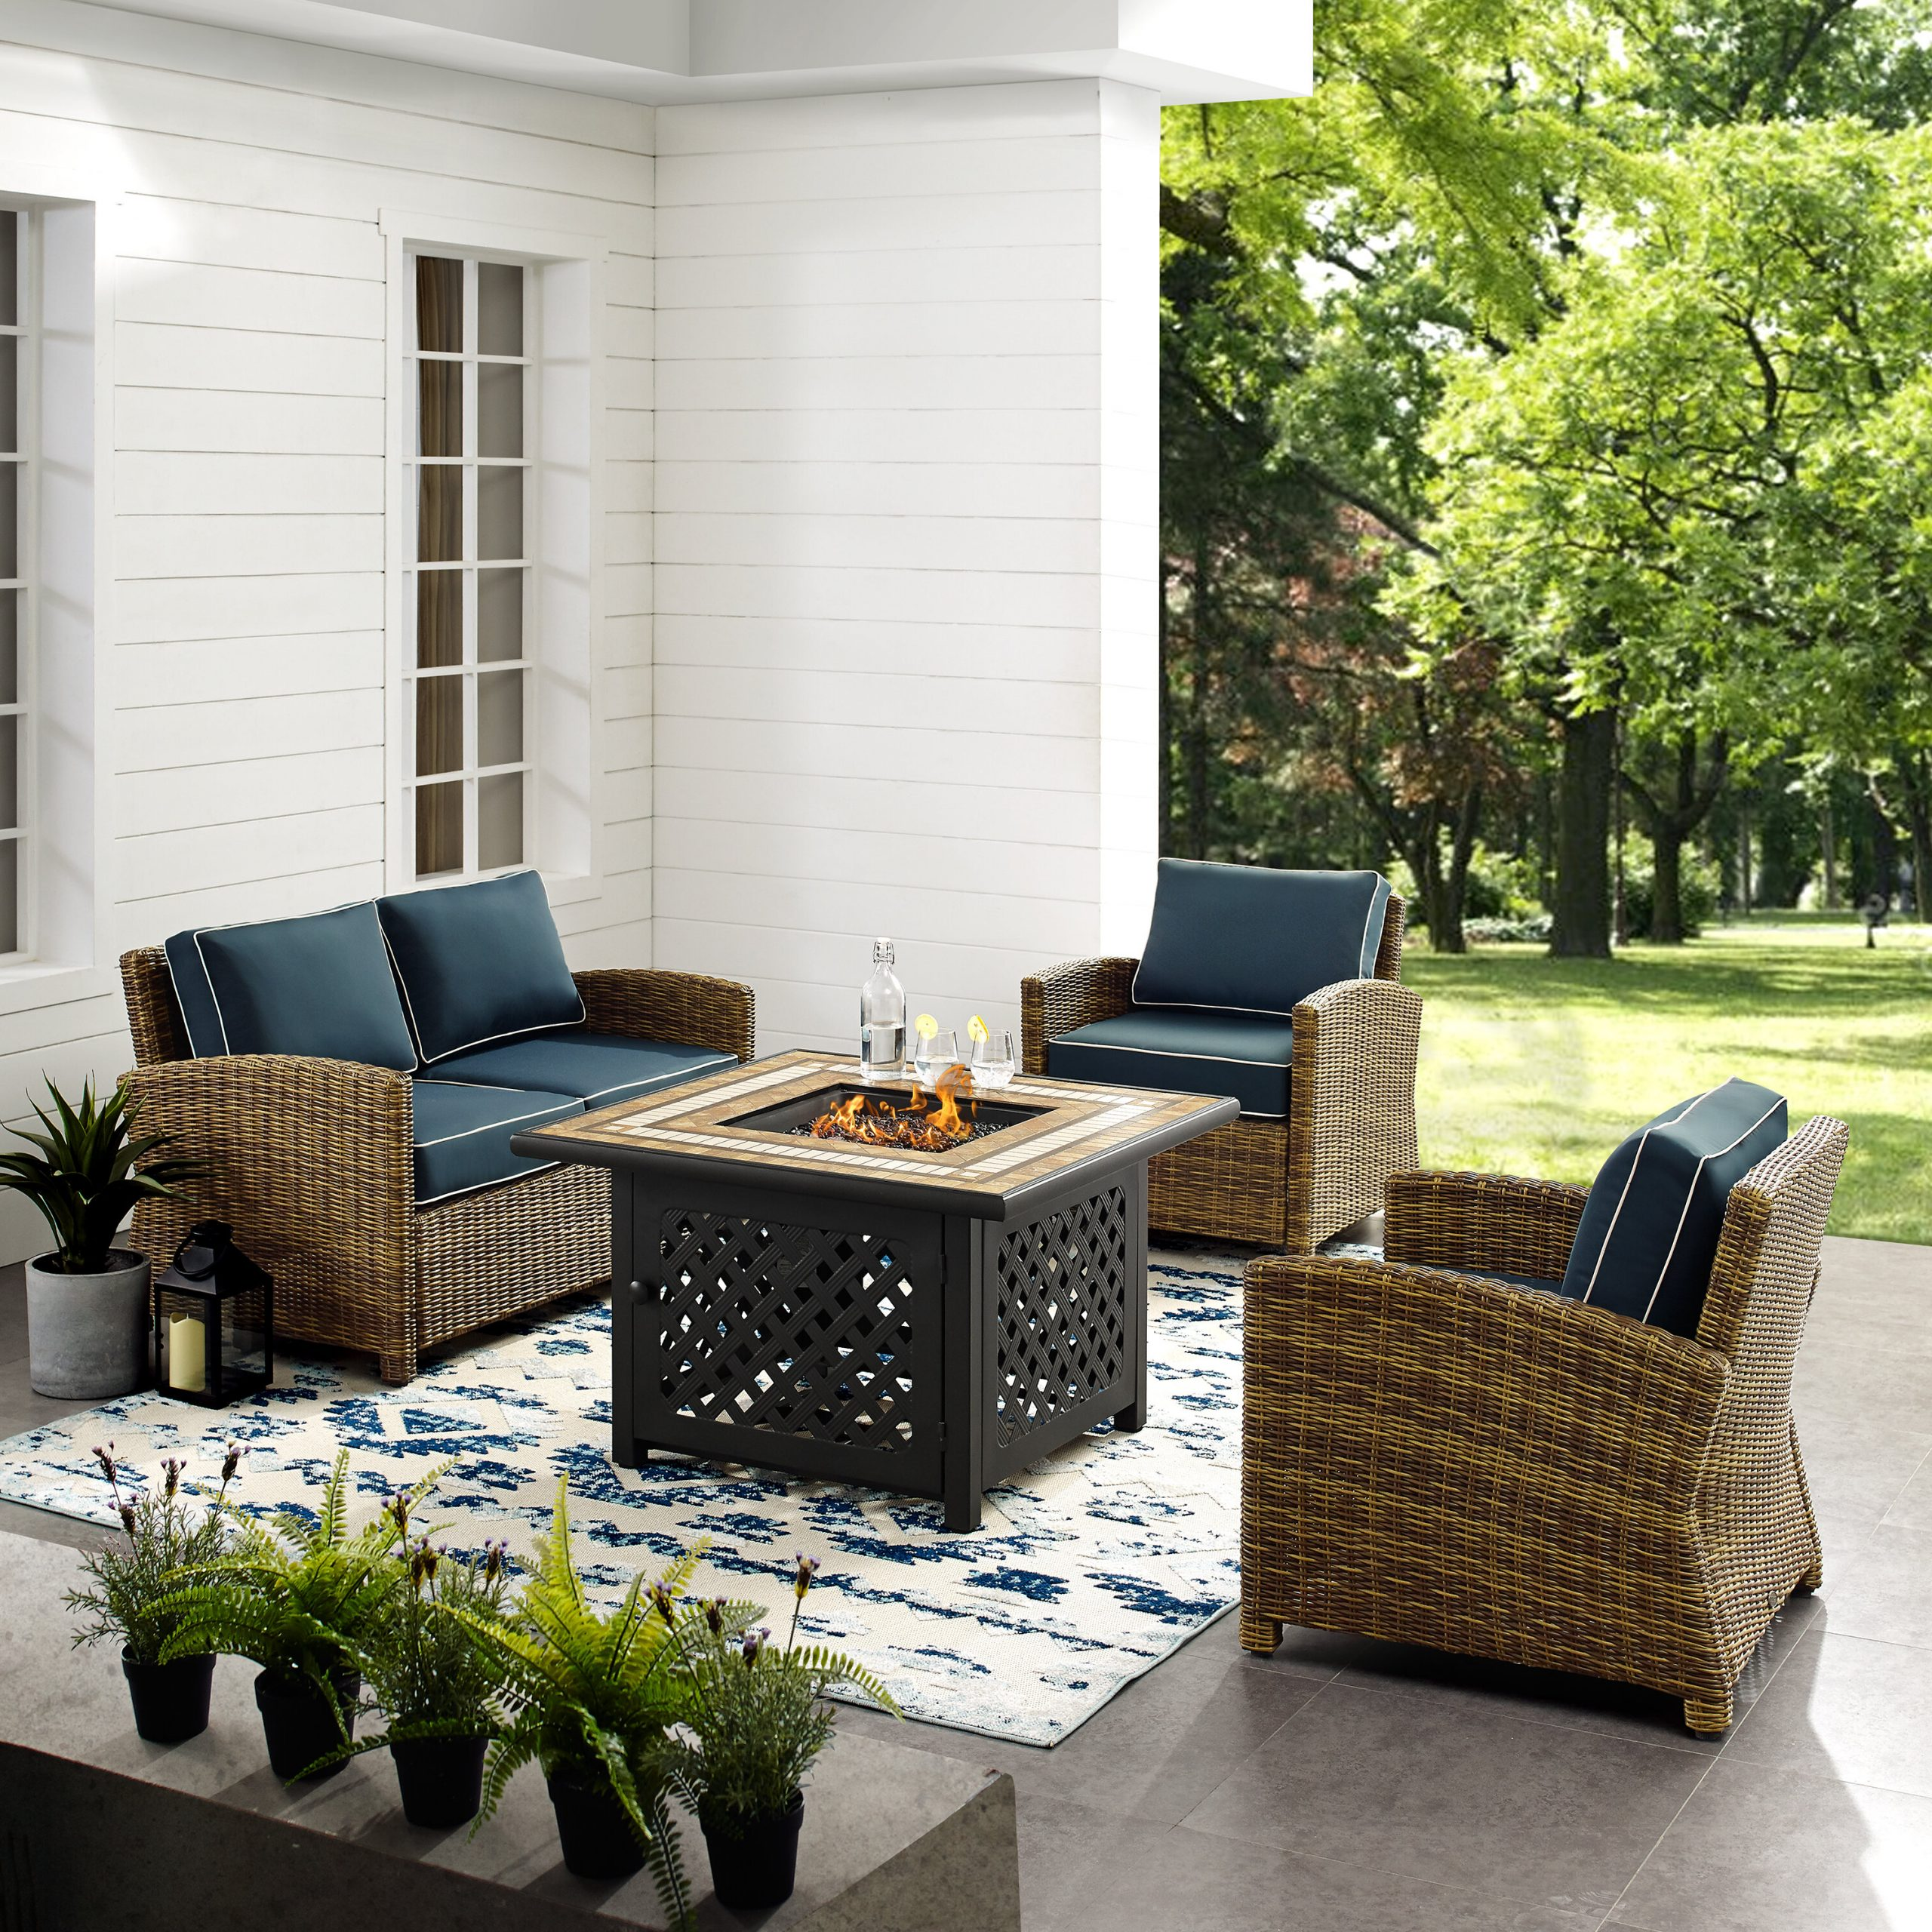 Lawson Wicker Loveseats With Cushions Pertaining To Preferred Lawson 4 Piece Outdoor Wicker Seating Set With Navy Cushions – Loveseat, Two Arm Chairs Fire Table (Gallery 14 of 25)